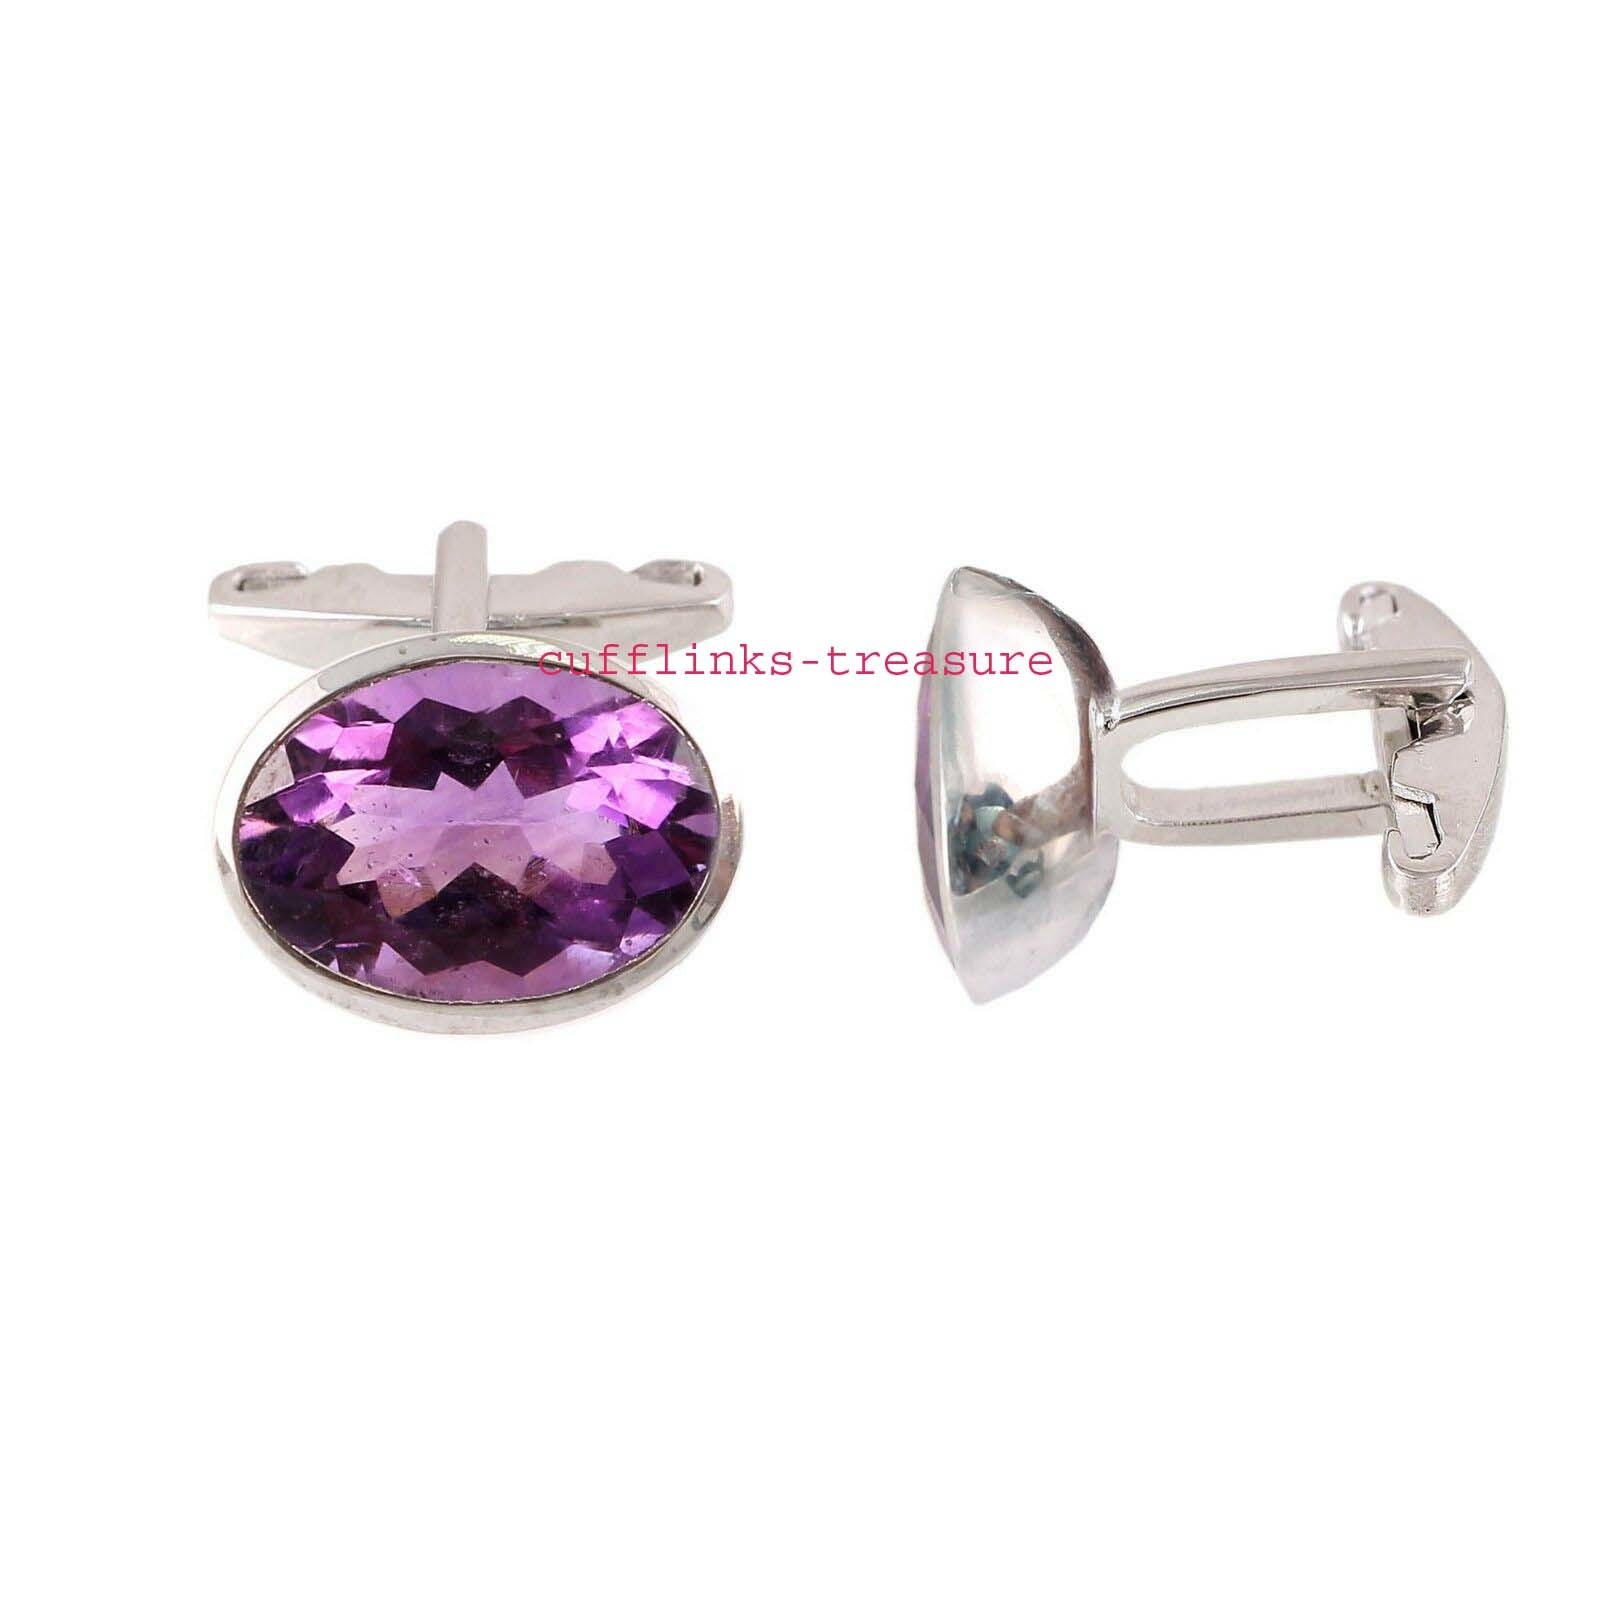 Natural Amethyst  Gemstones With 925 Sterling Silver Cufflinks for men's - $85.00